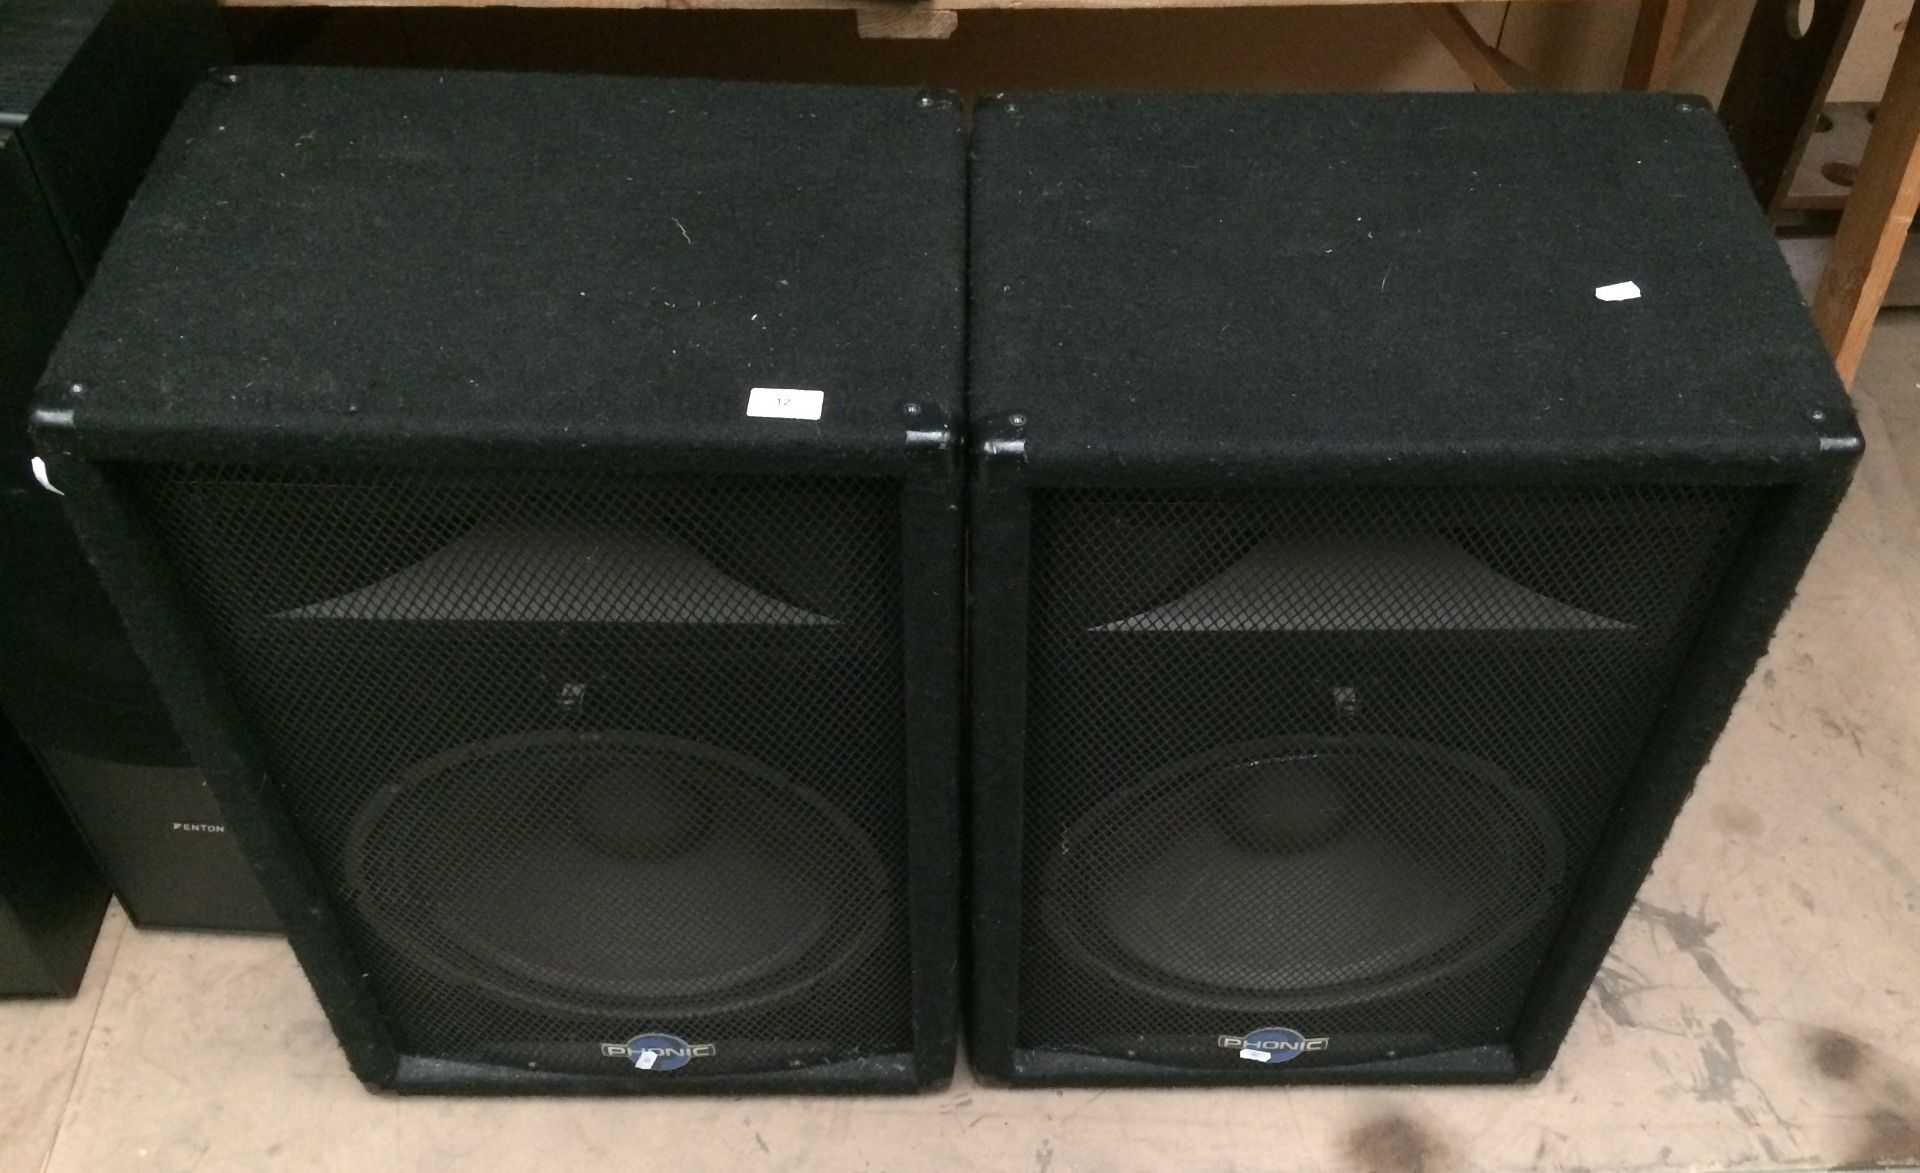 Lot 12 - Pair of Phonic SE715 speakers